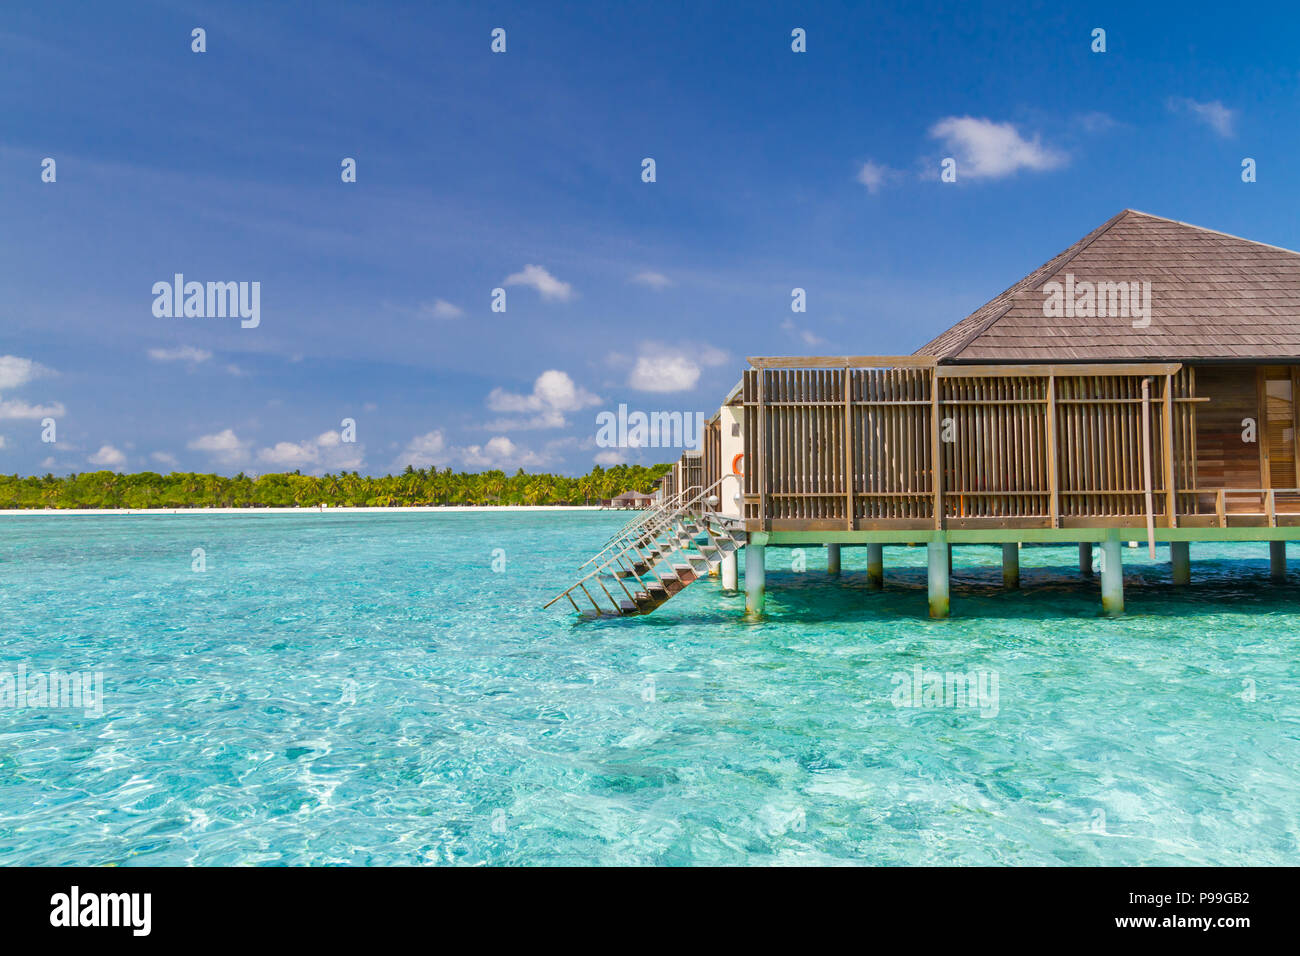 Luxury over water bungalow and villas side view with beautiful blue sea and lagoon - Stock Image